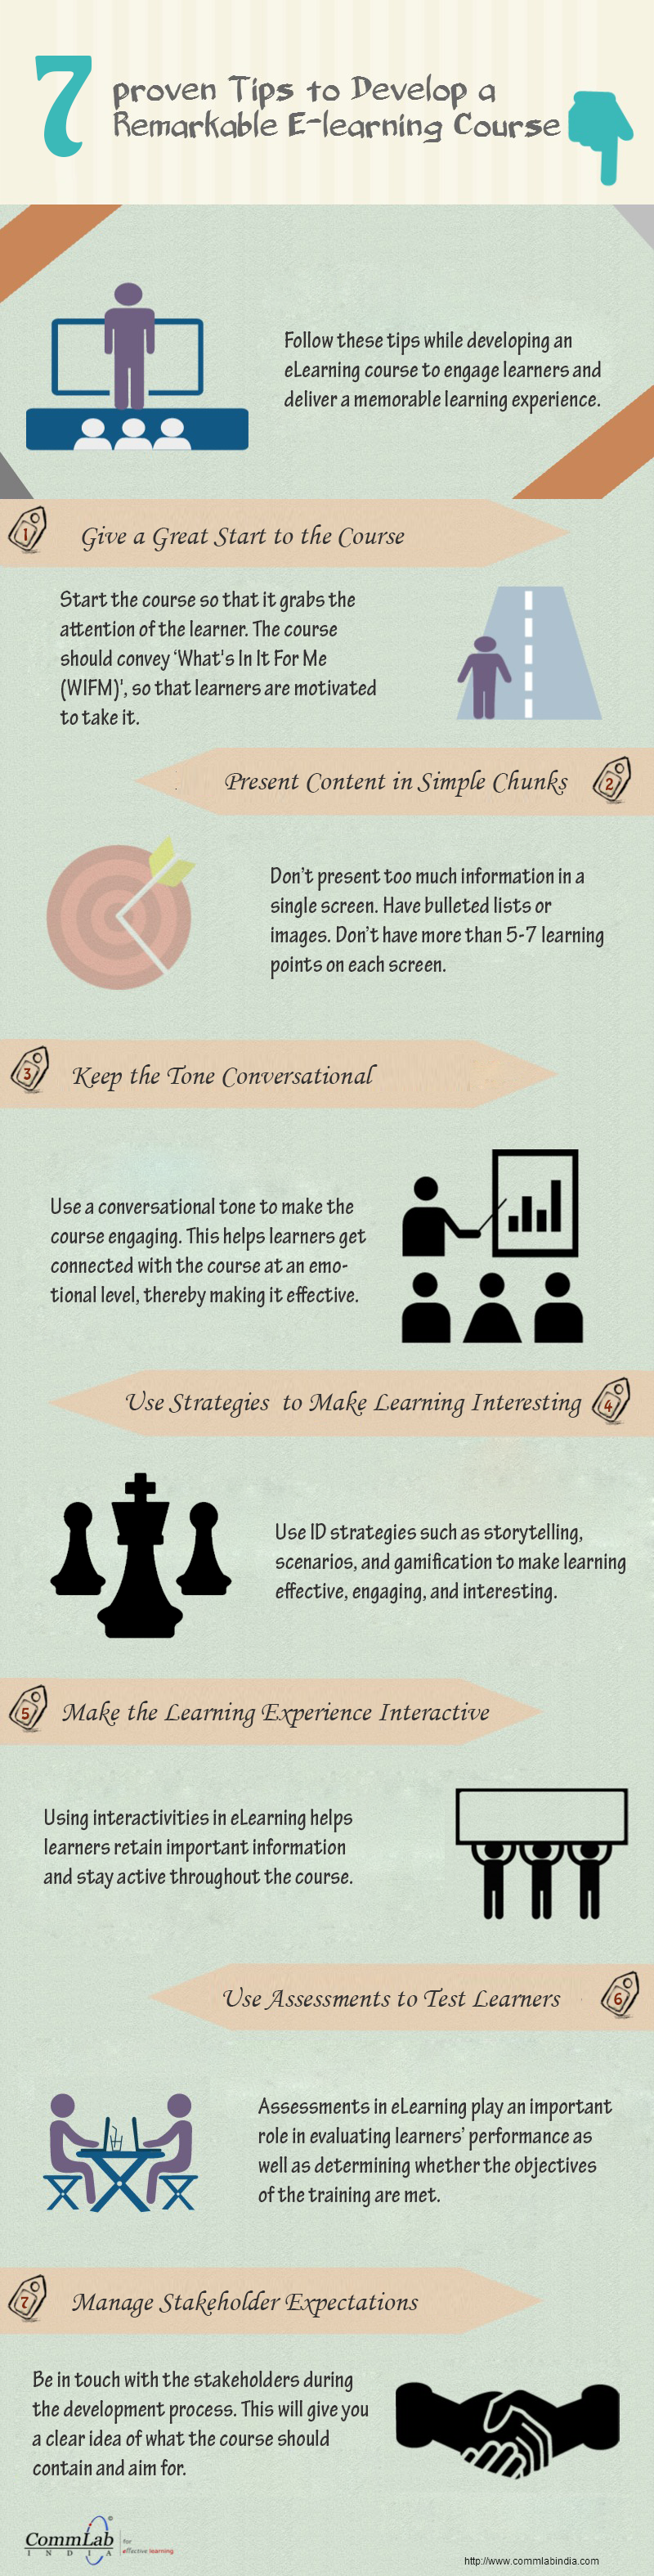 7 Proven Tips to Develop a Remarkable E-learning Course [Infographic]